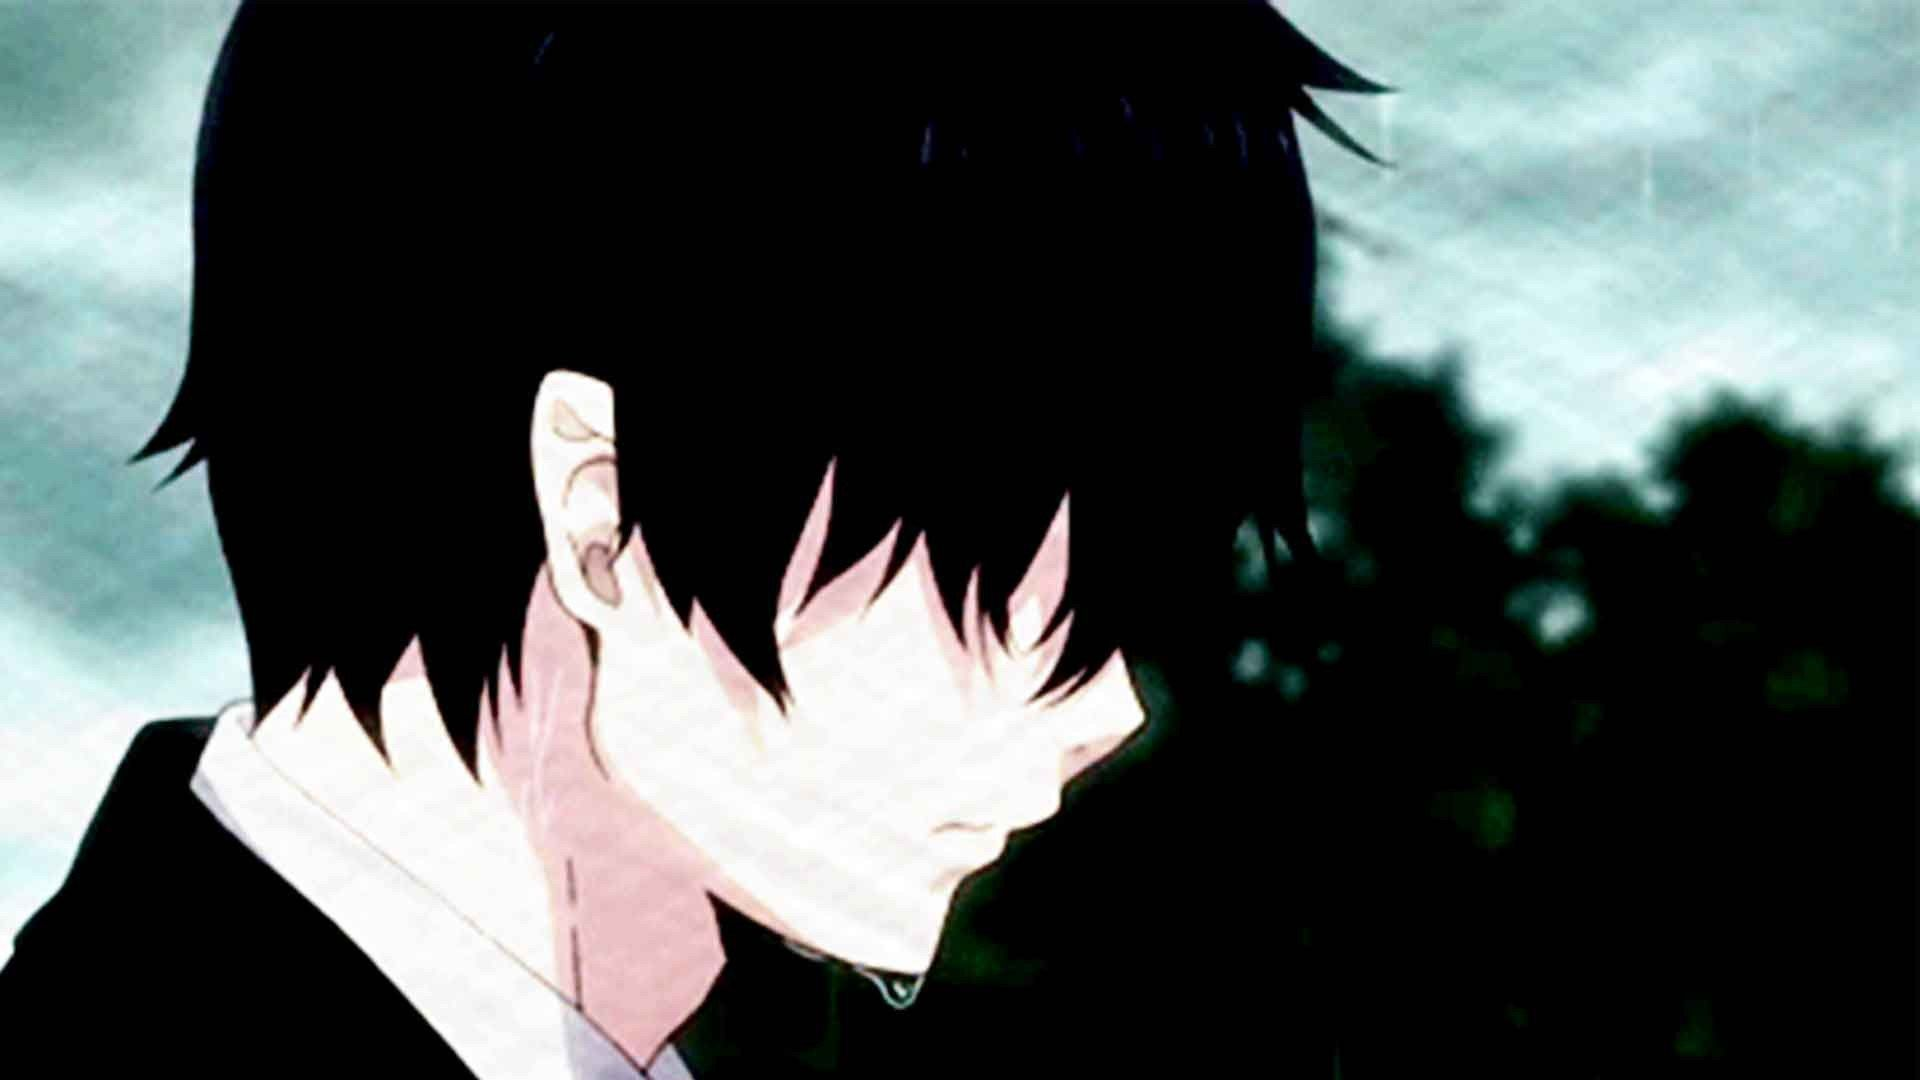 depressed anime character